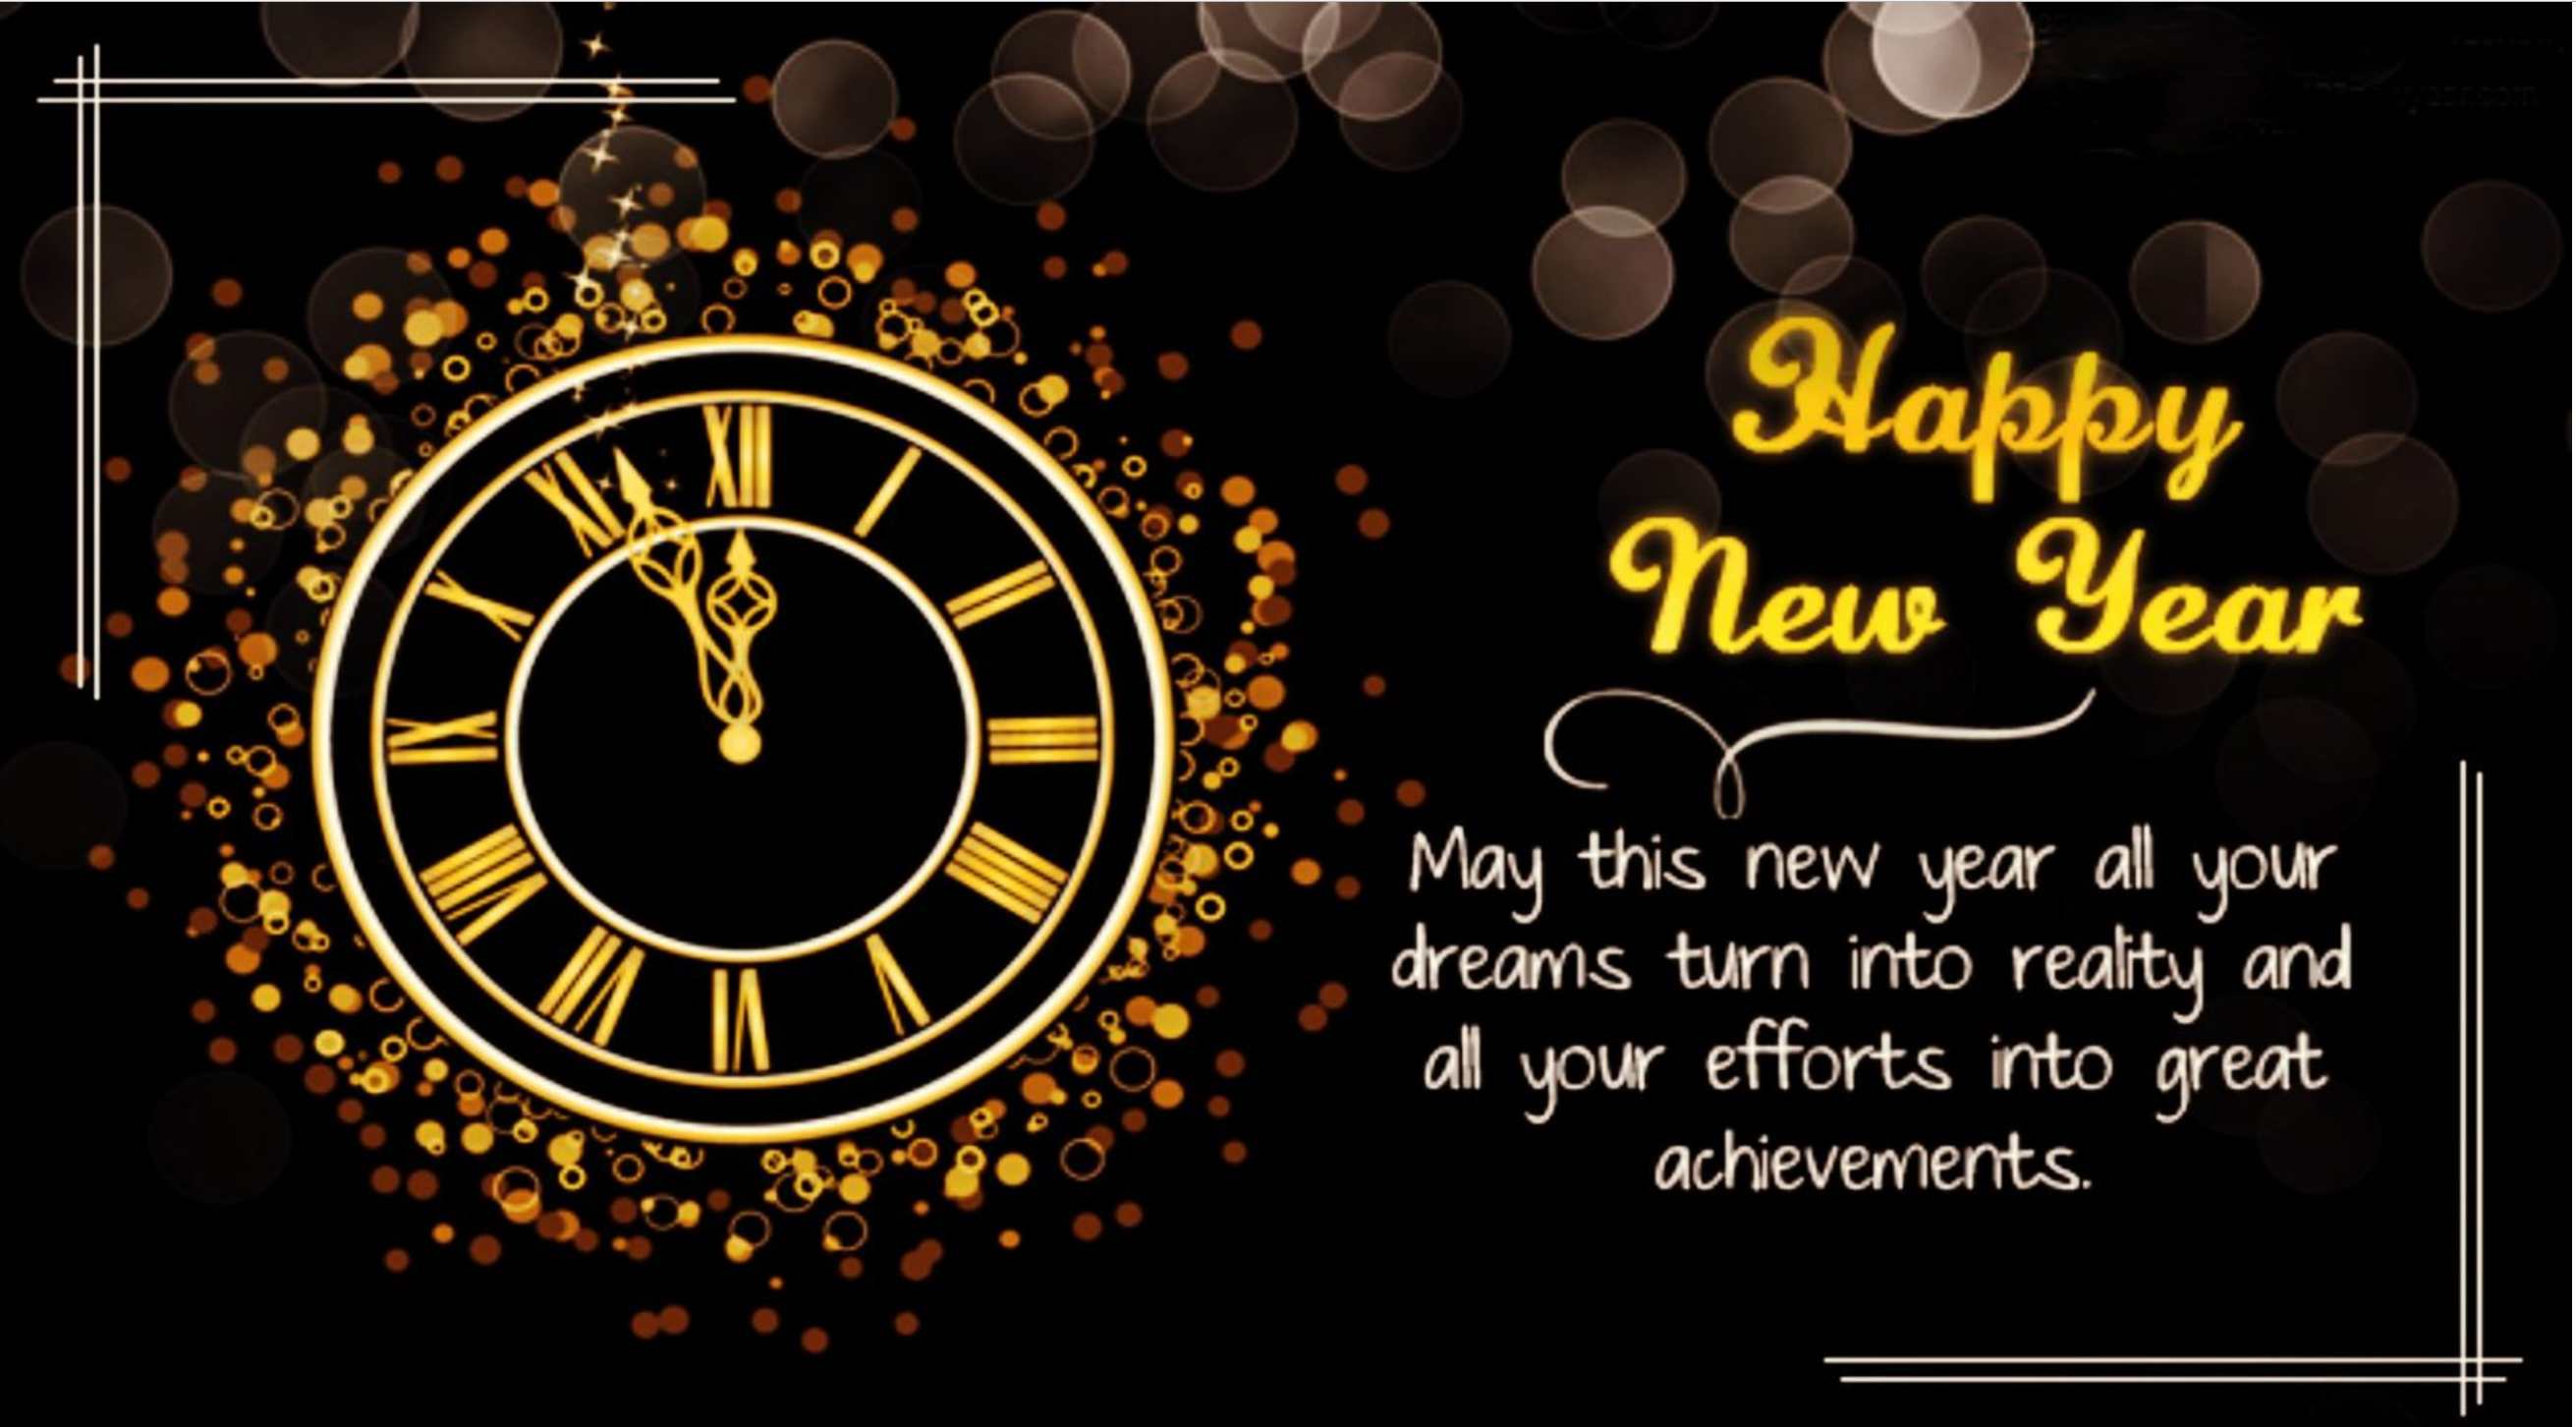 Happy New Year Wishes Images For Friends Family Everyone New Year Wishes Quotes Happy New Year Message New Year Wishes Messages